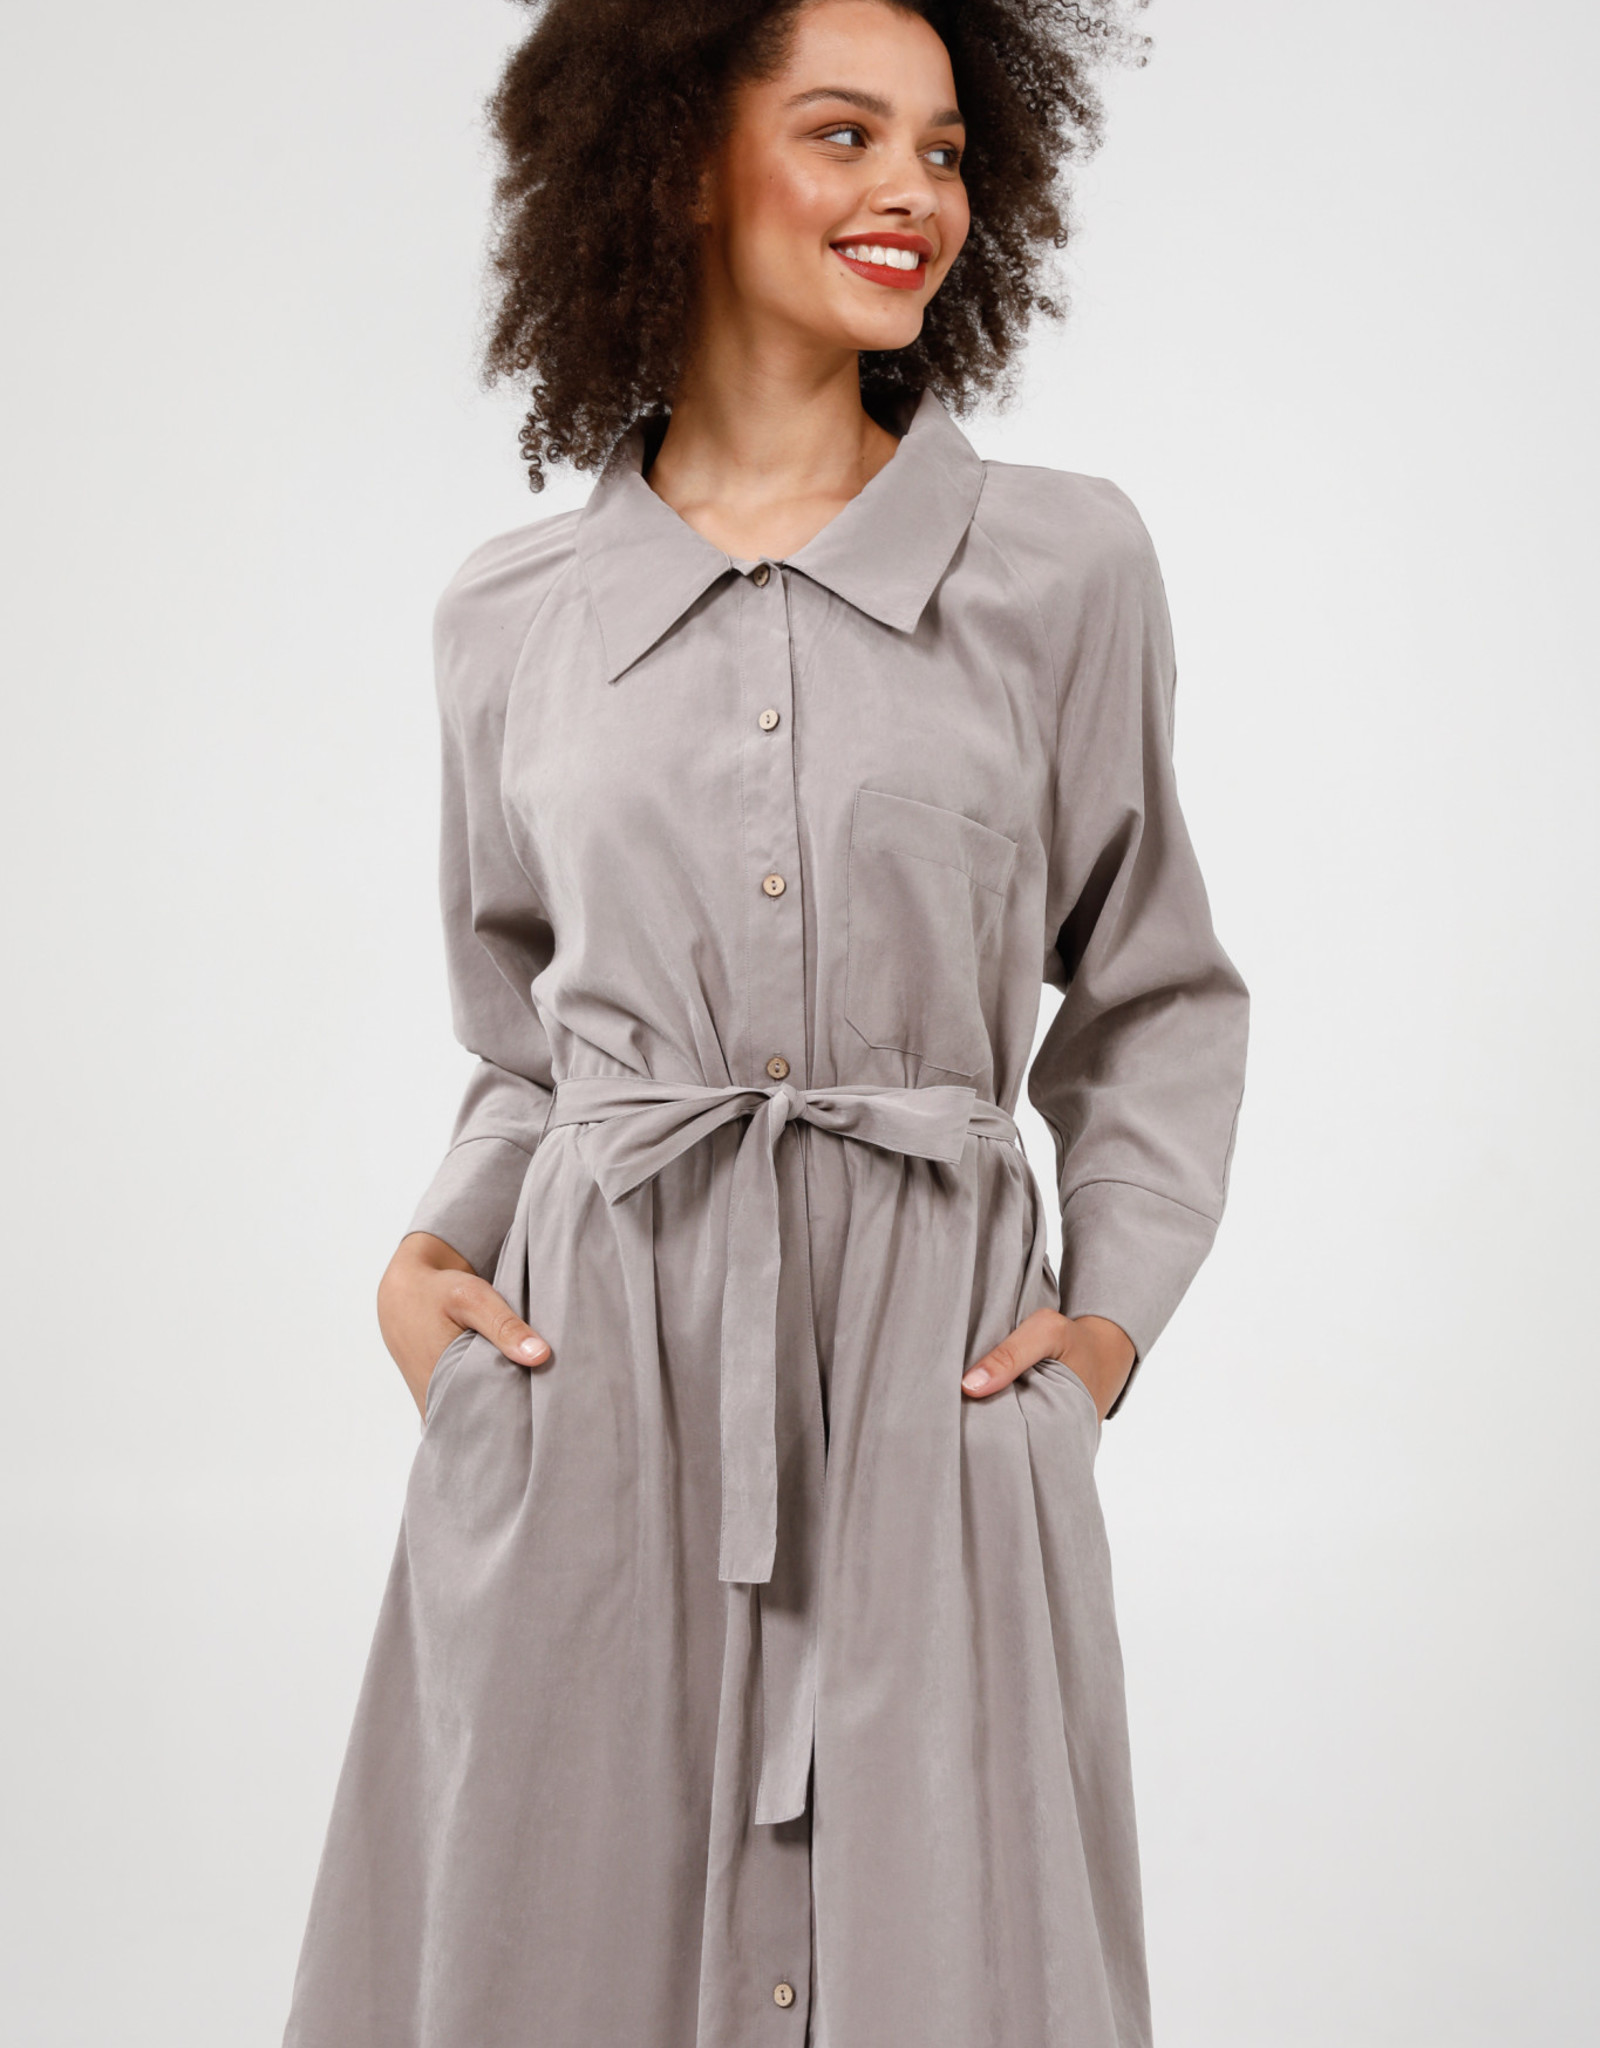 Brave & True BT5715 Ines Shirt DRESS